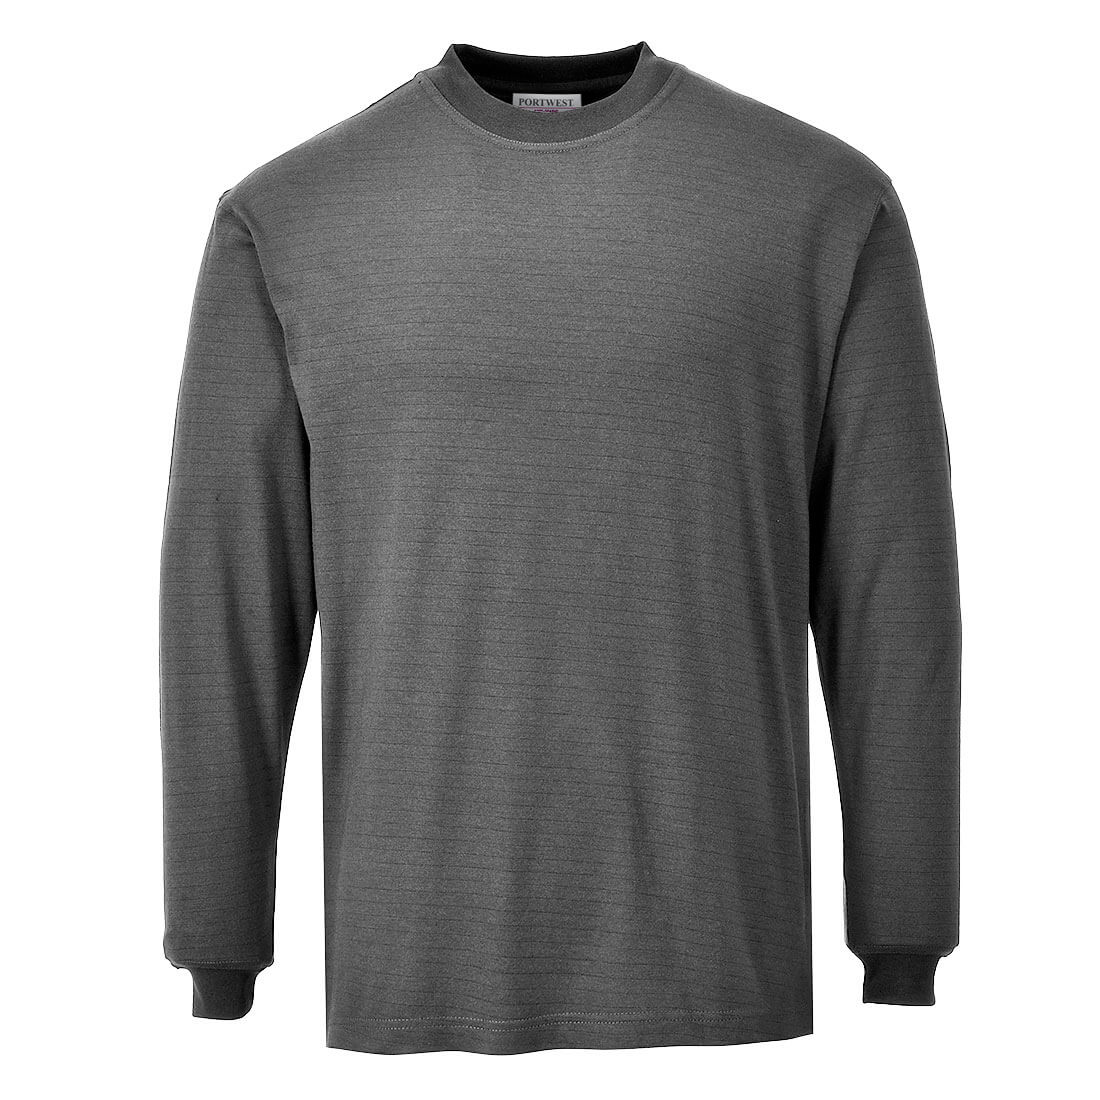 Image of Modaflame Mens Flame Resistant Antistatic T-Shirt Grey 2XL